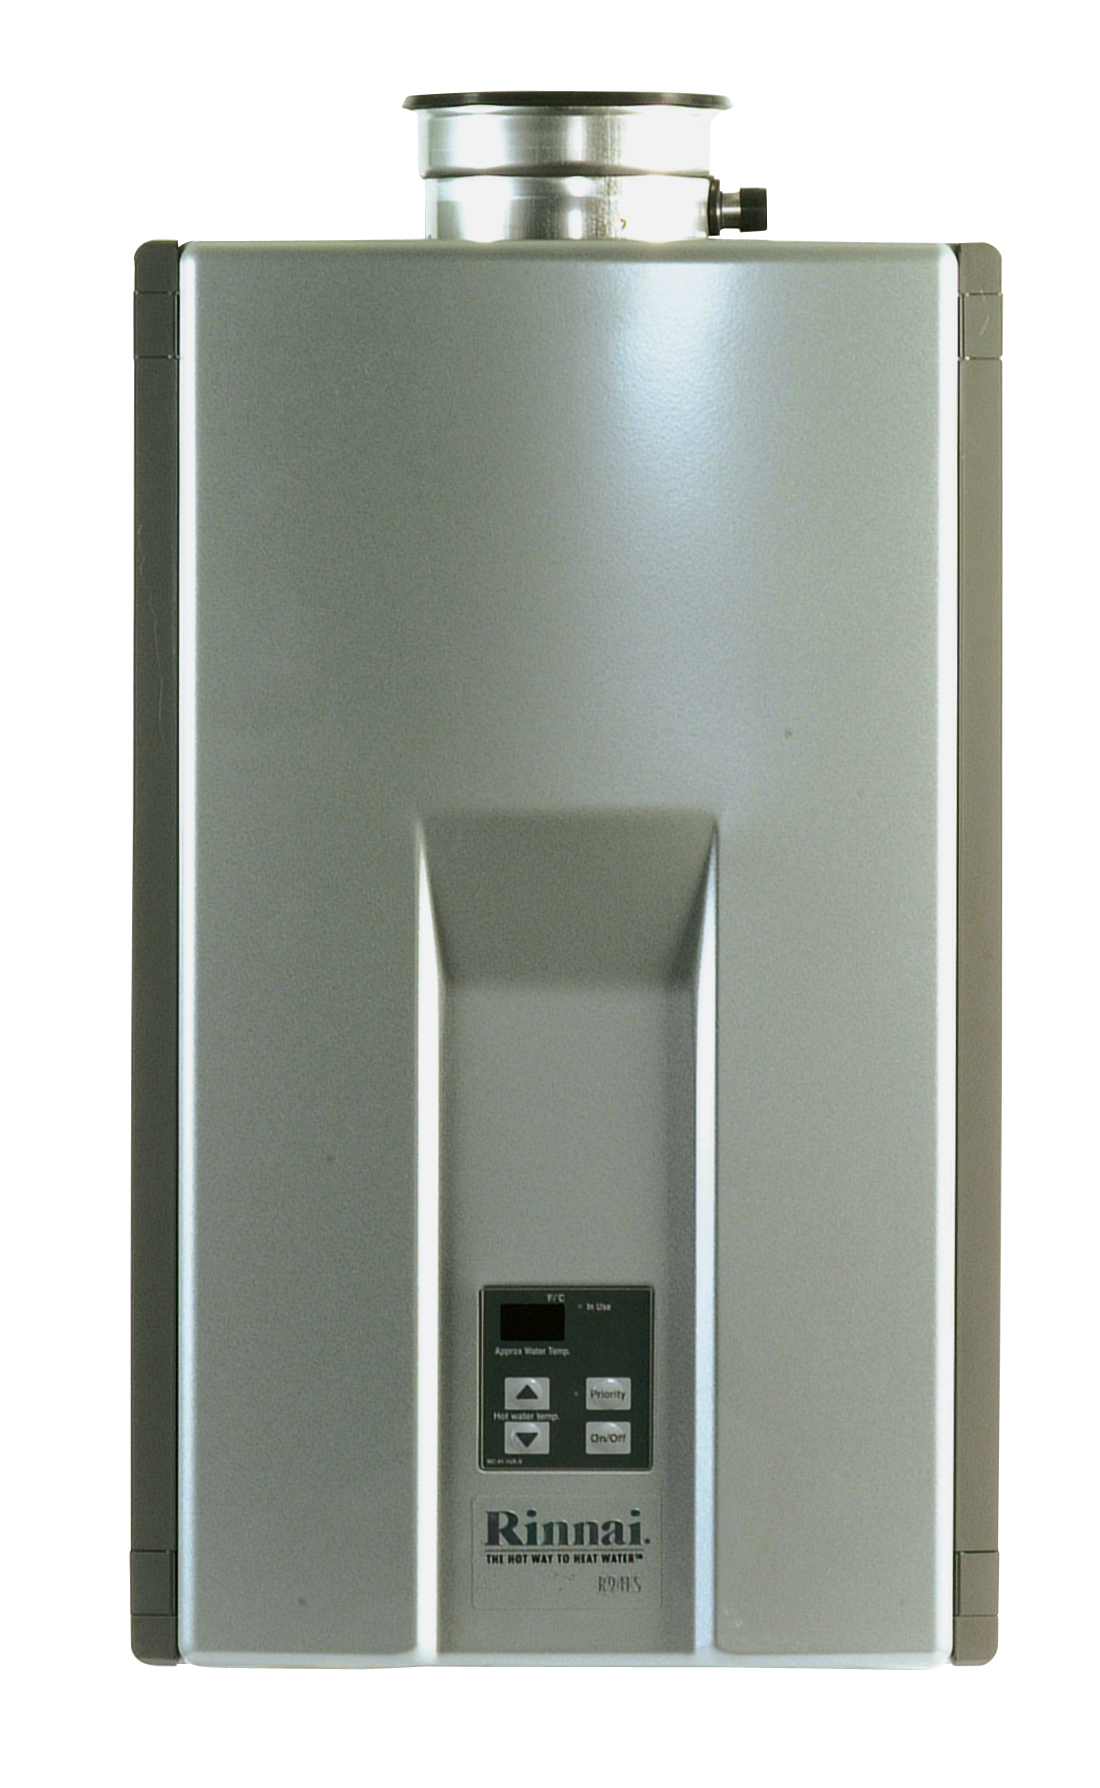 Rinnai Tankless Water Heaters And Direct Vent Furnaces Are